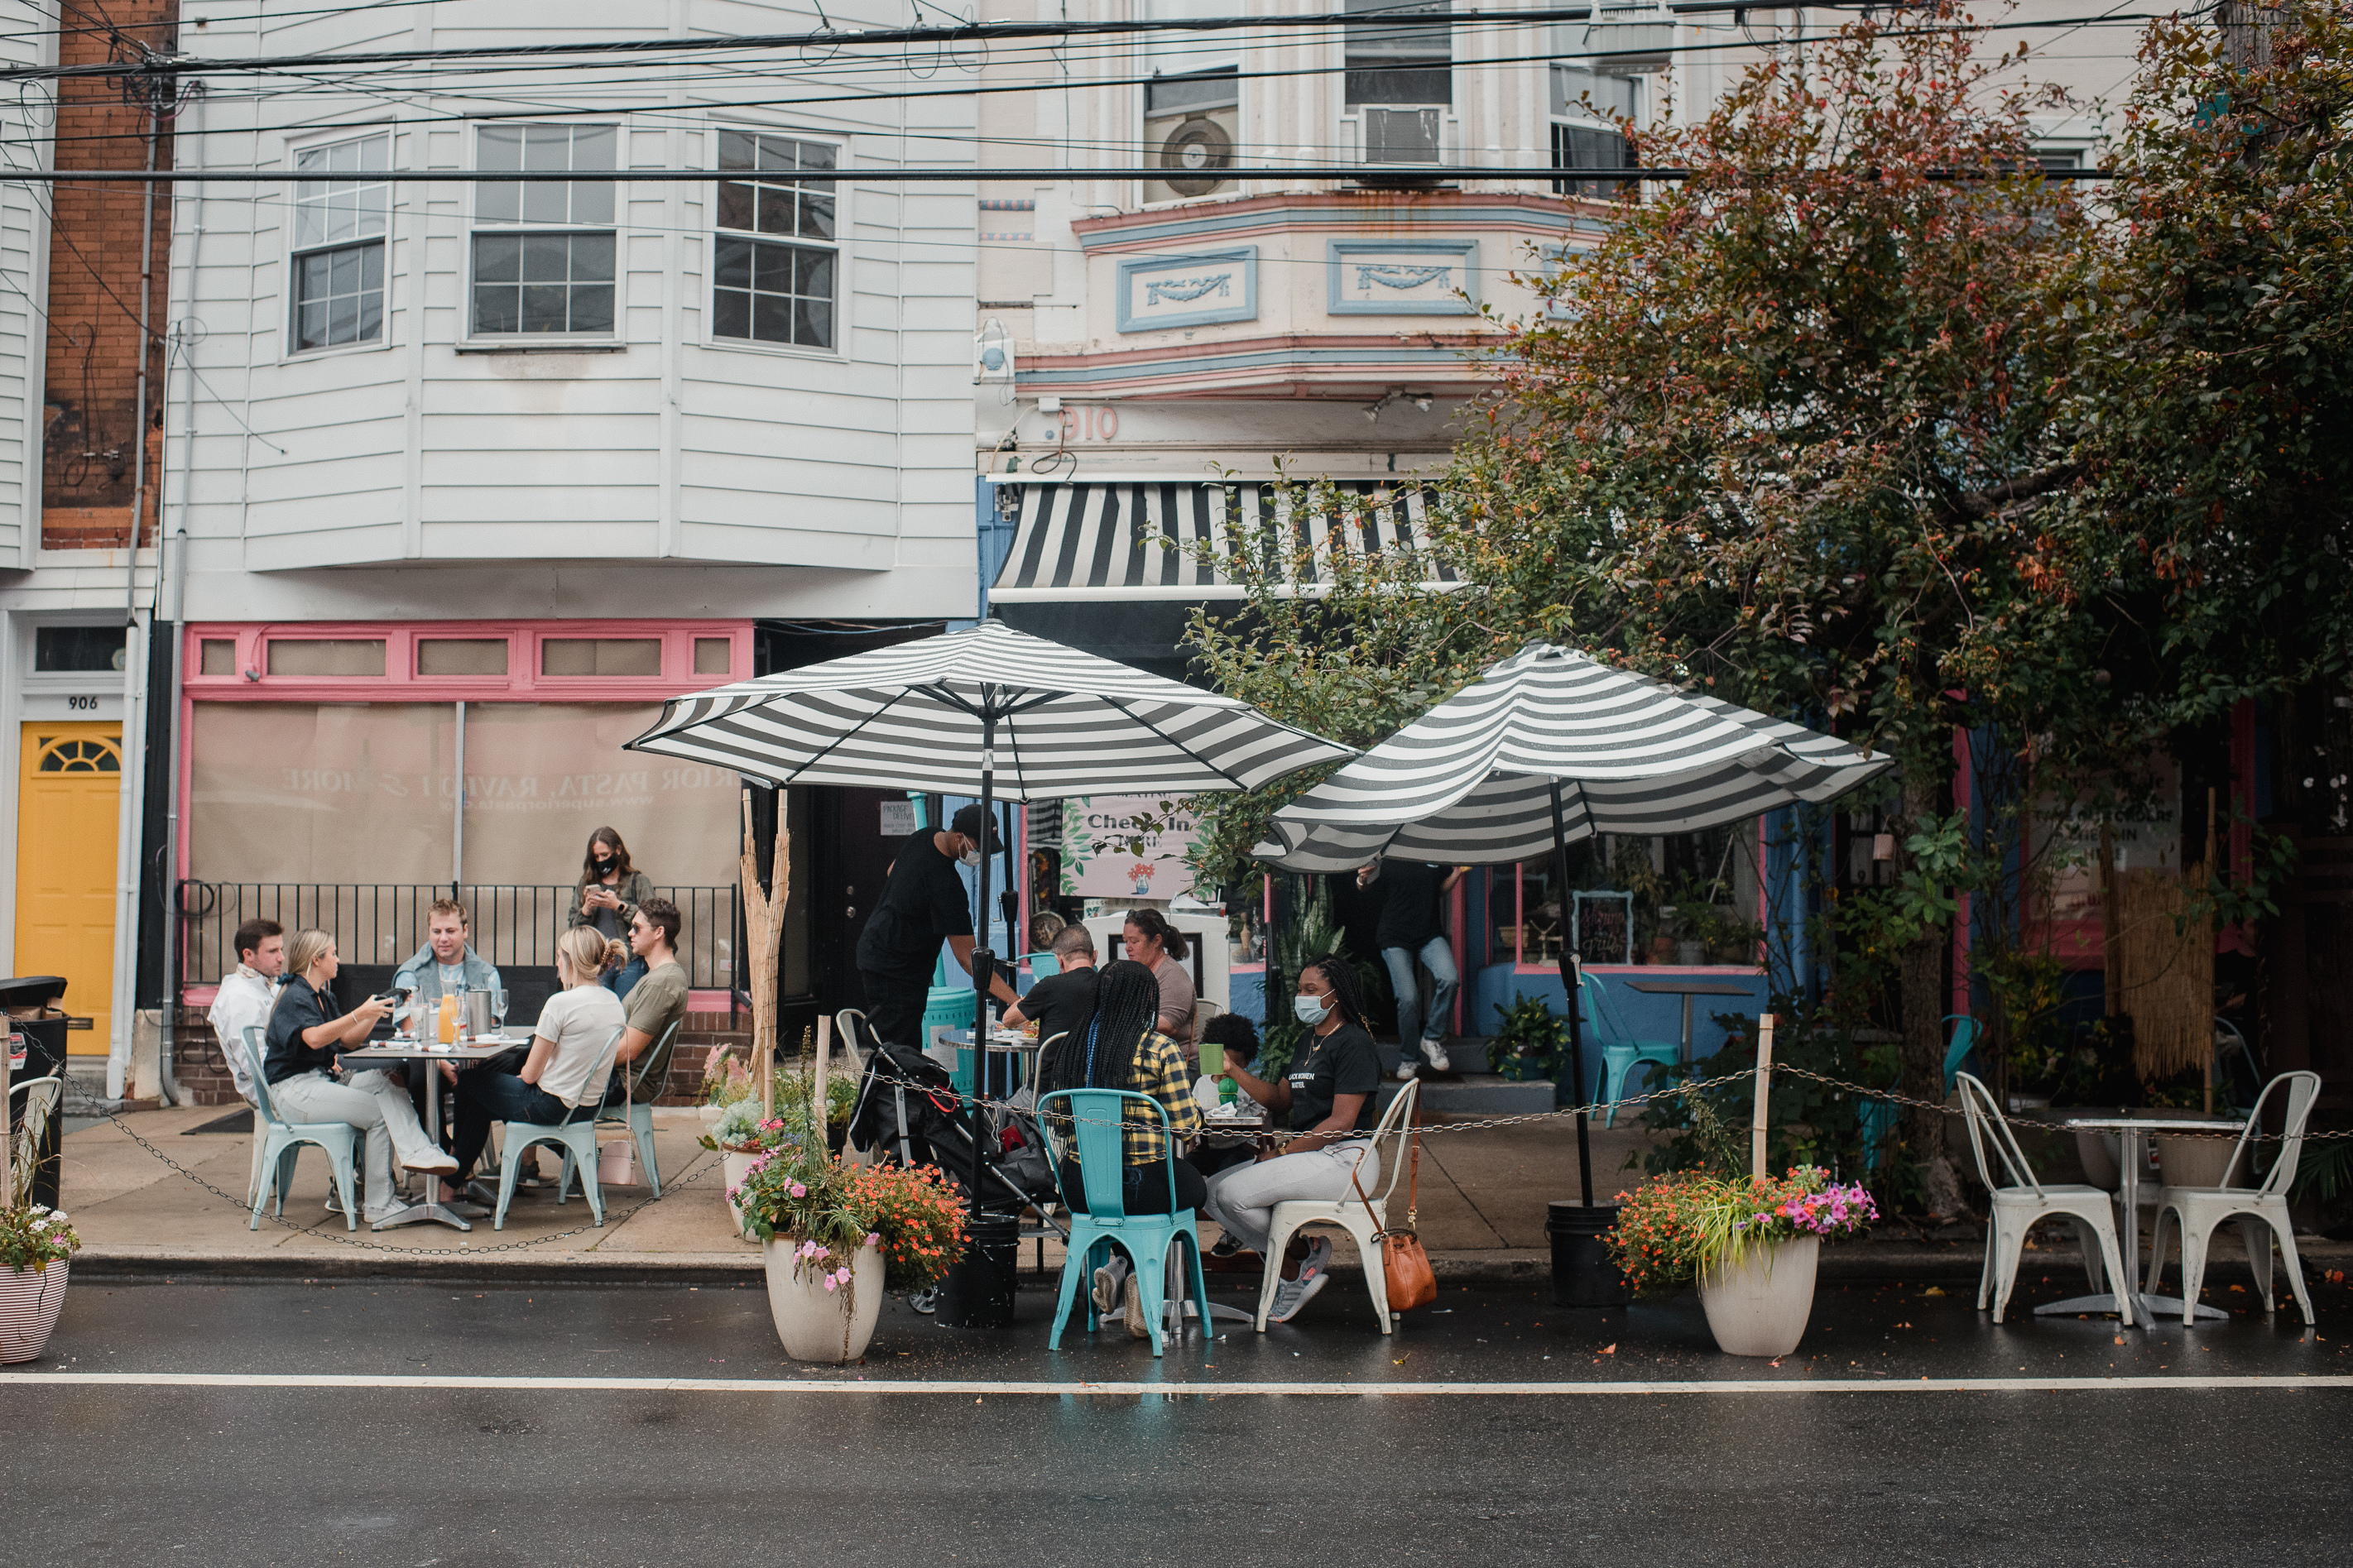 Customers eat outside at Sabrina's Cafe in Philadelphia on Sept. 26, 2020.